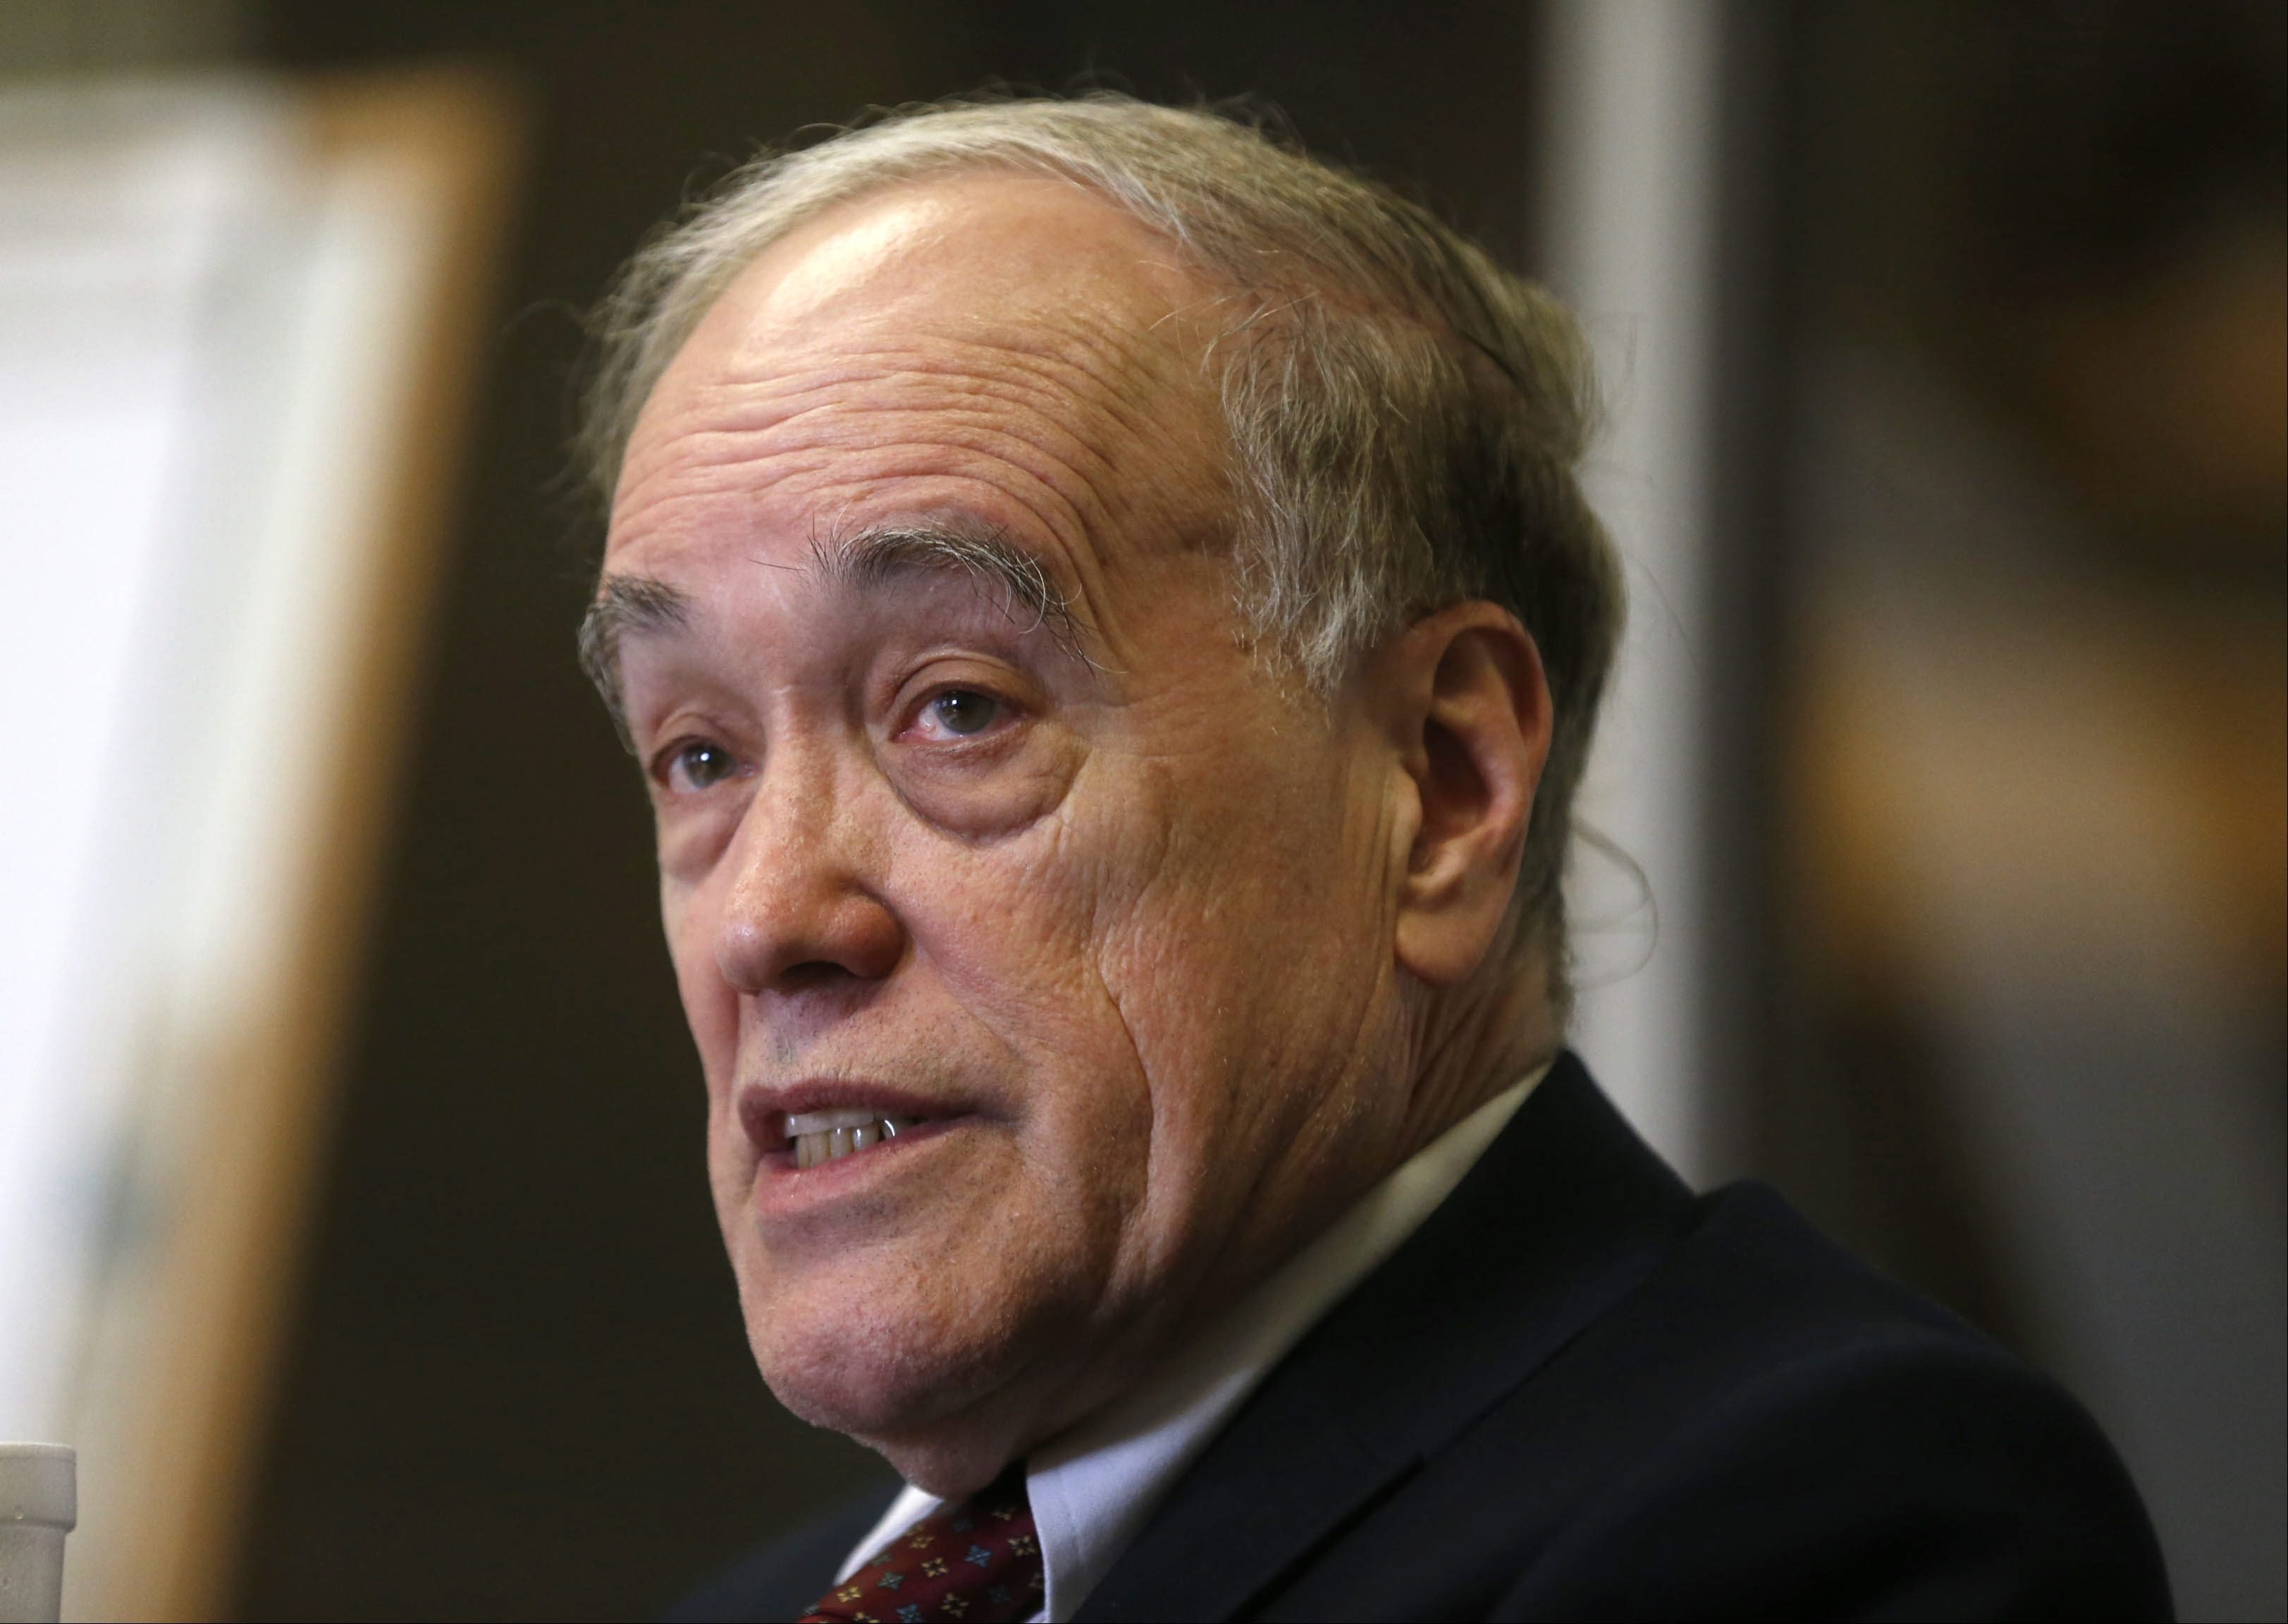 The Buffalo School District ignored many of the recommendations made by Gary Orfield that would have opened more seats in criteria schools. (Robert Kirkham/Buffalo News)